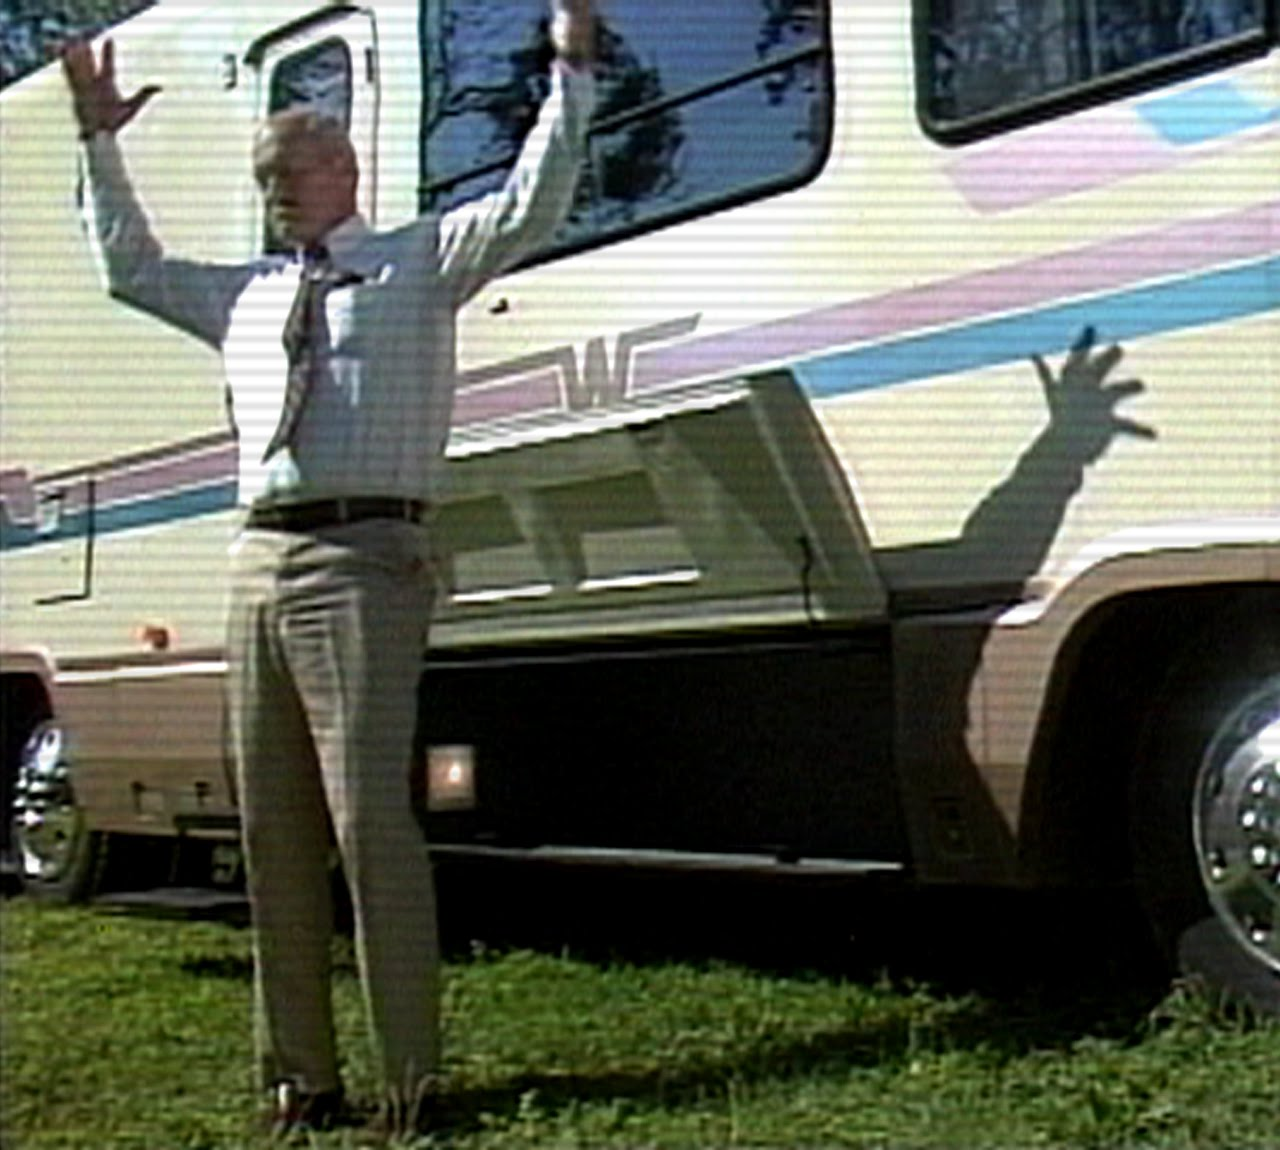 Can You Believe This Sh*t? WINNEBAGO MAN comes to DVD November 2nd